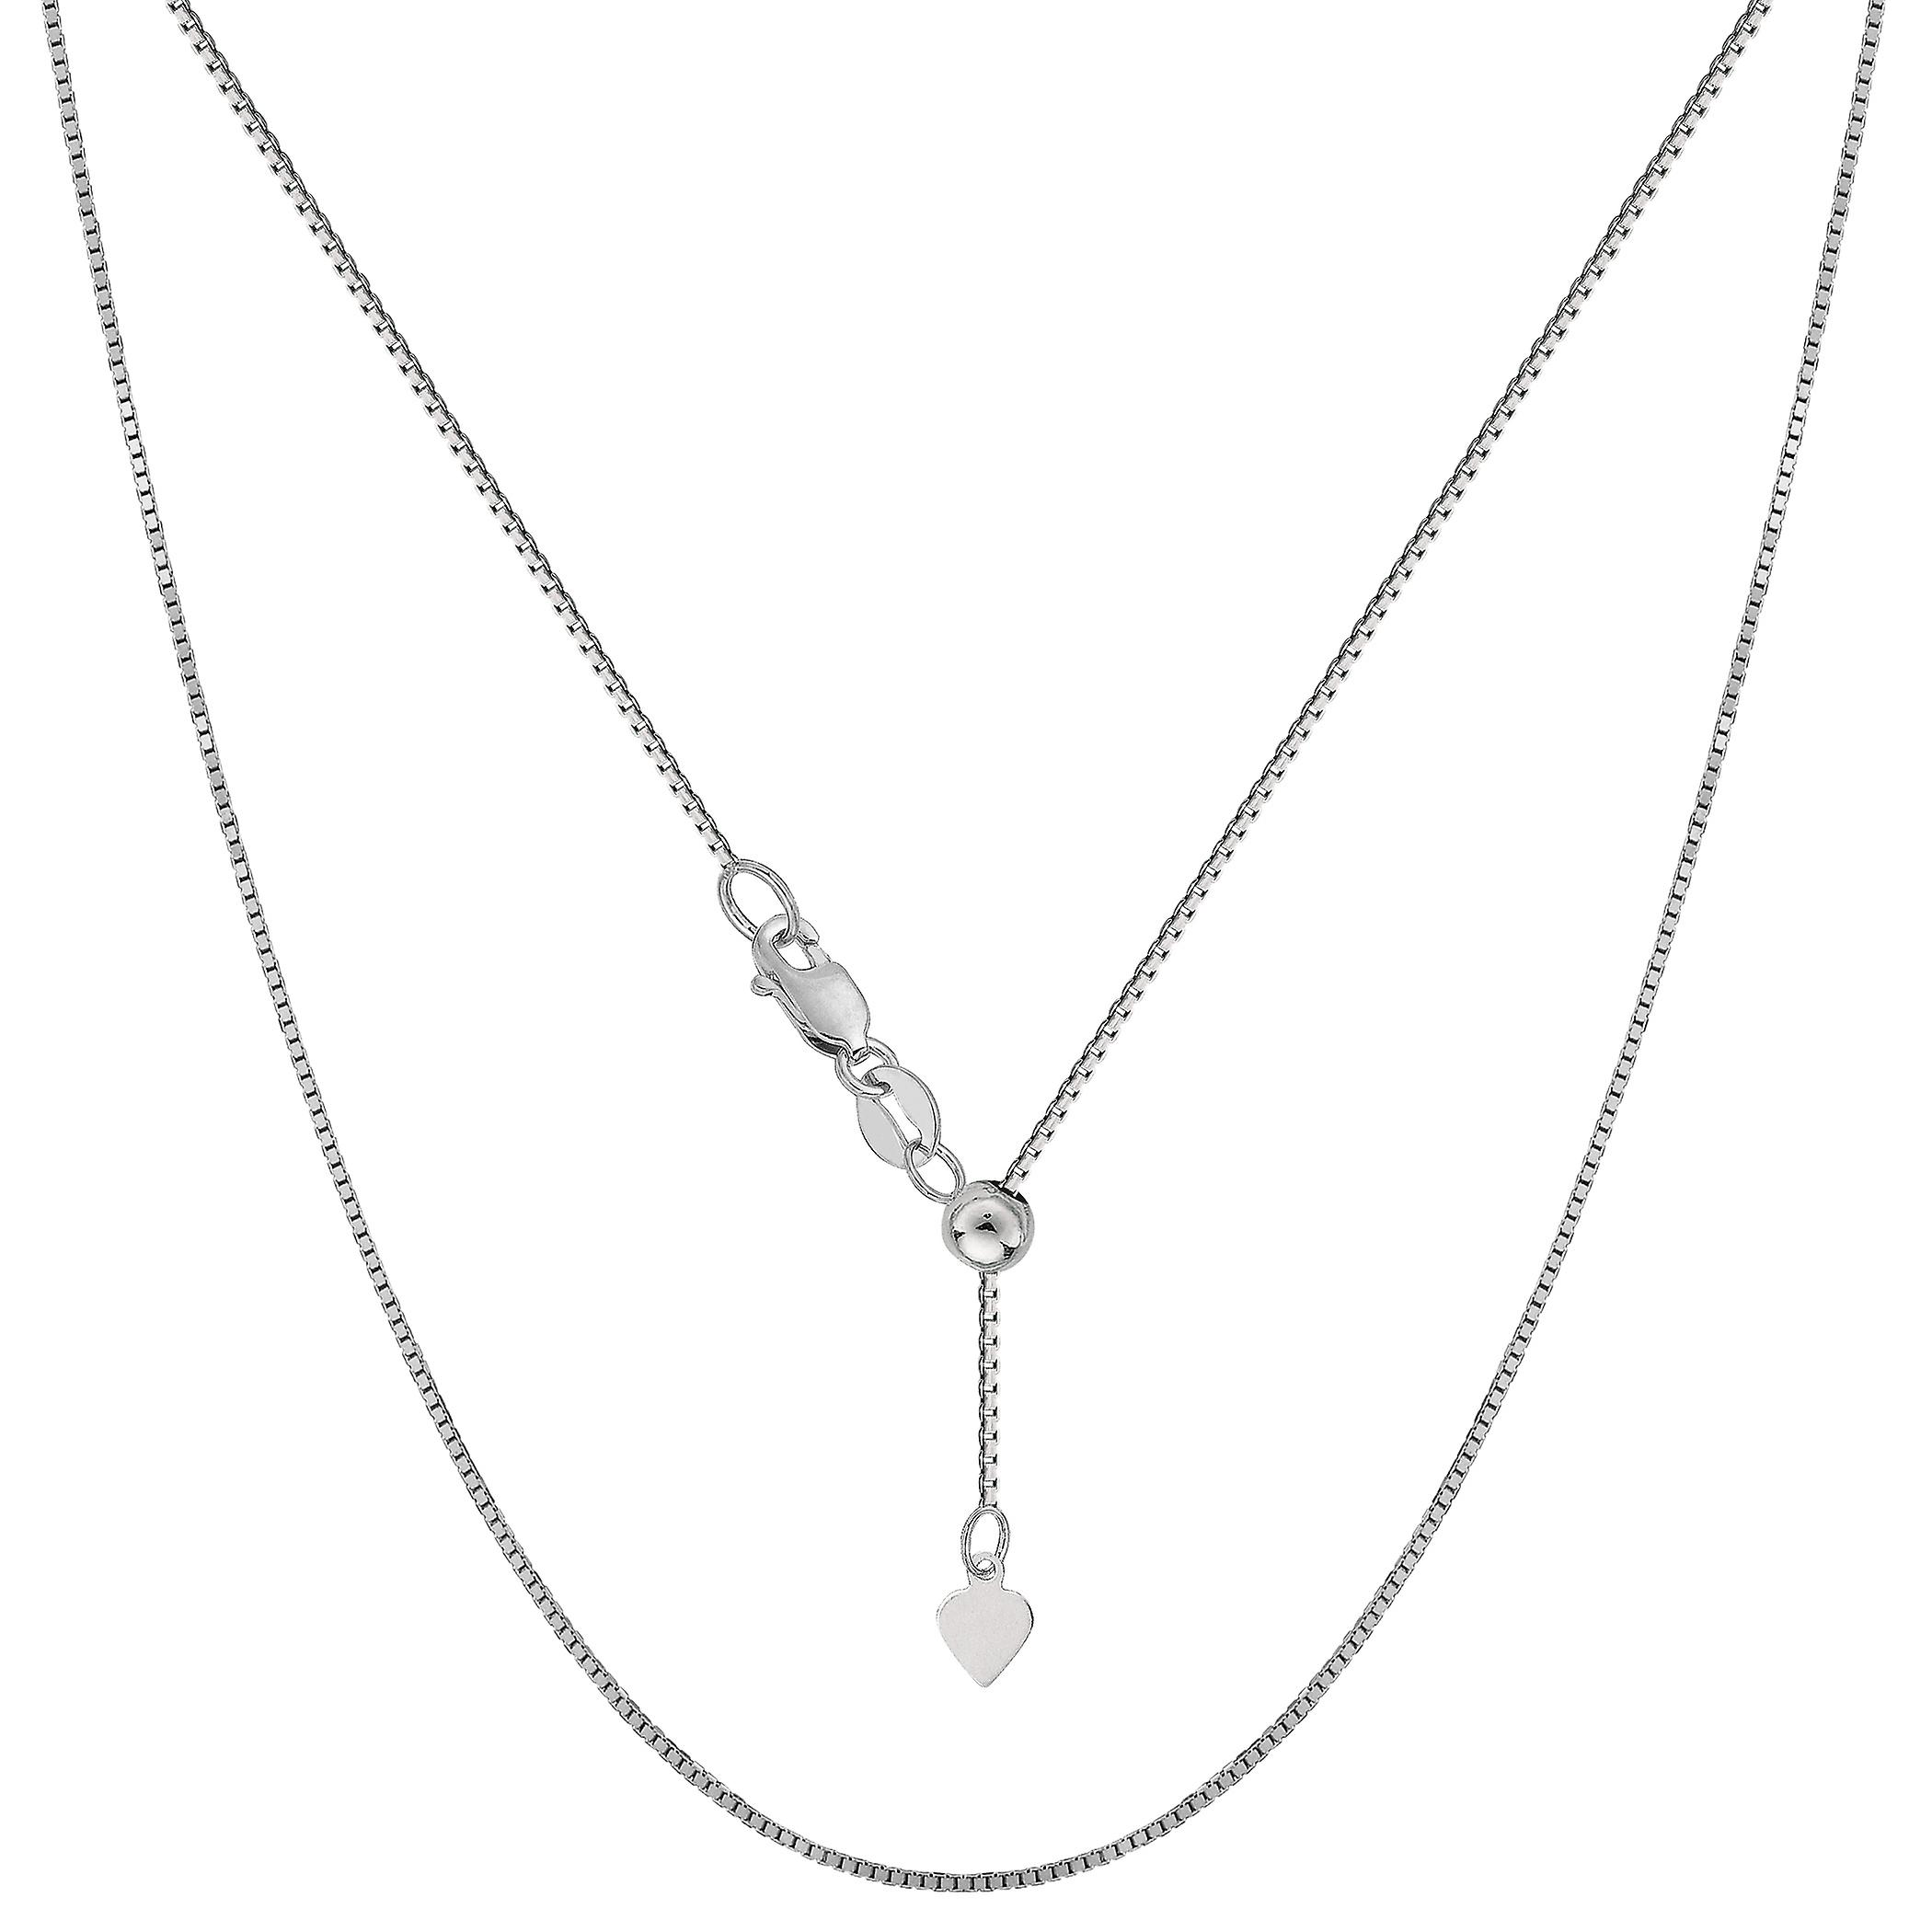 14k blanc or Adjustable Box Link Chain Necklace, 0.7mm, 22& 034;